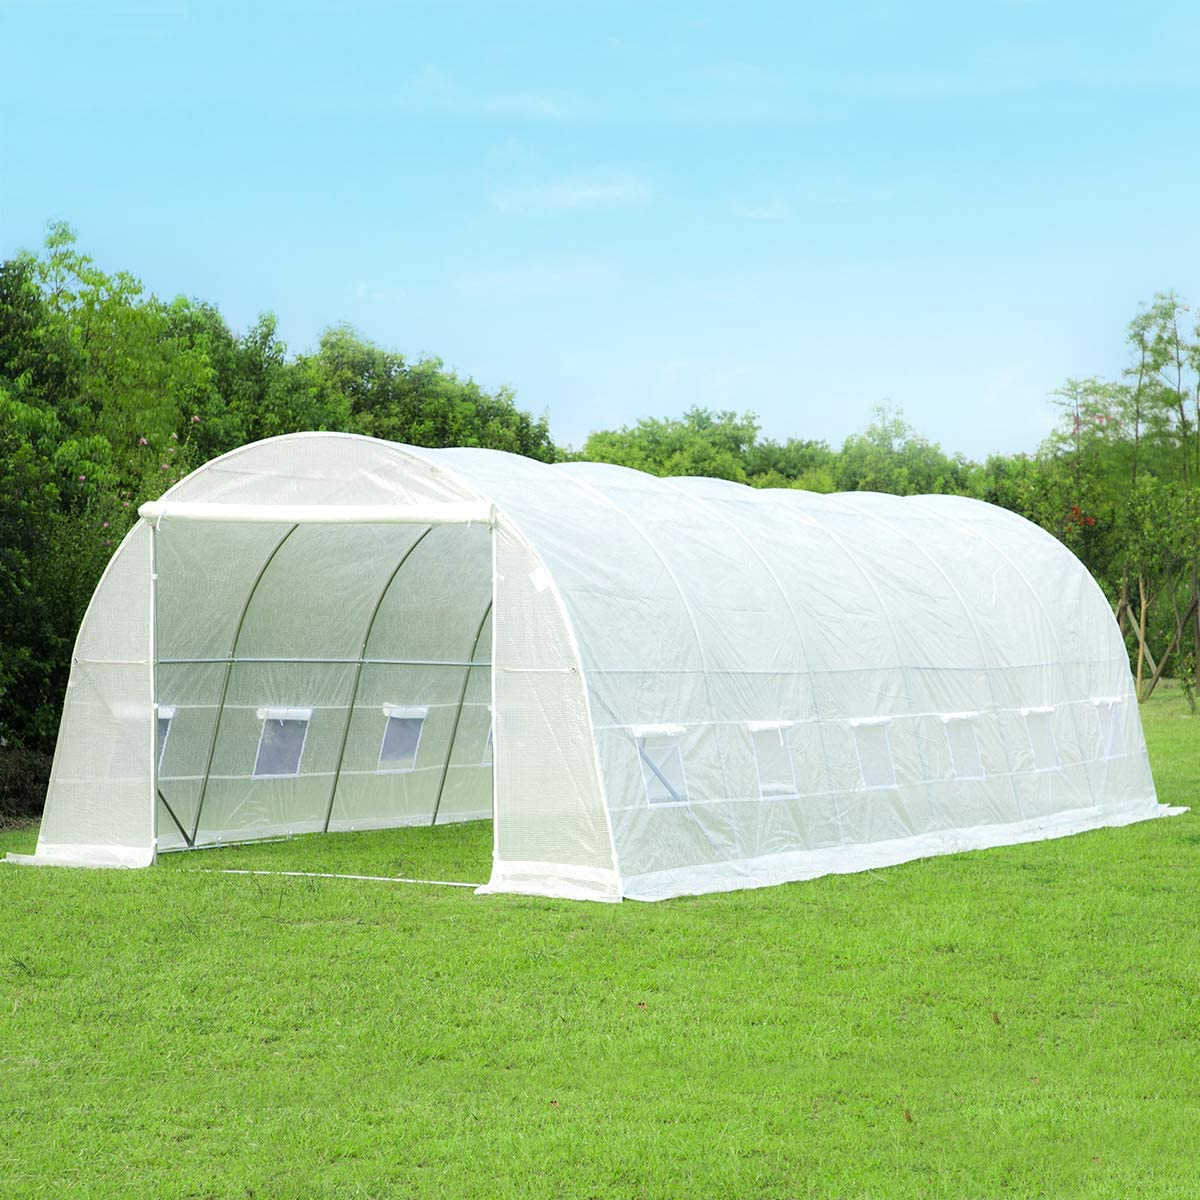 Erommy 26' x Quality inspection 10' 7' Greenhouse Large House Gardening High order Hot Plant